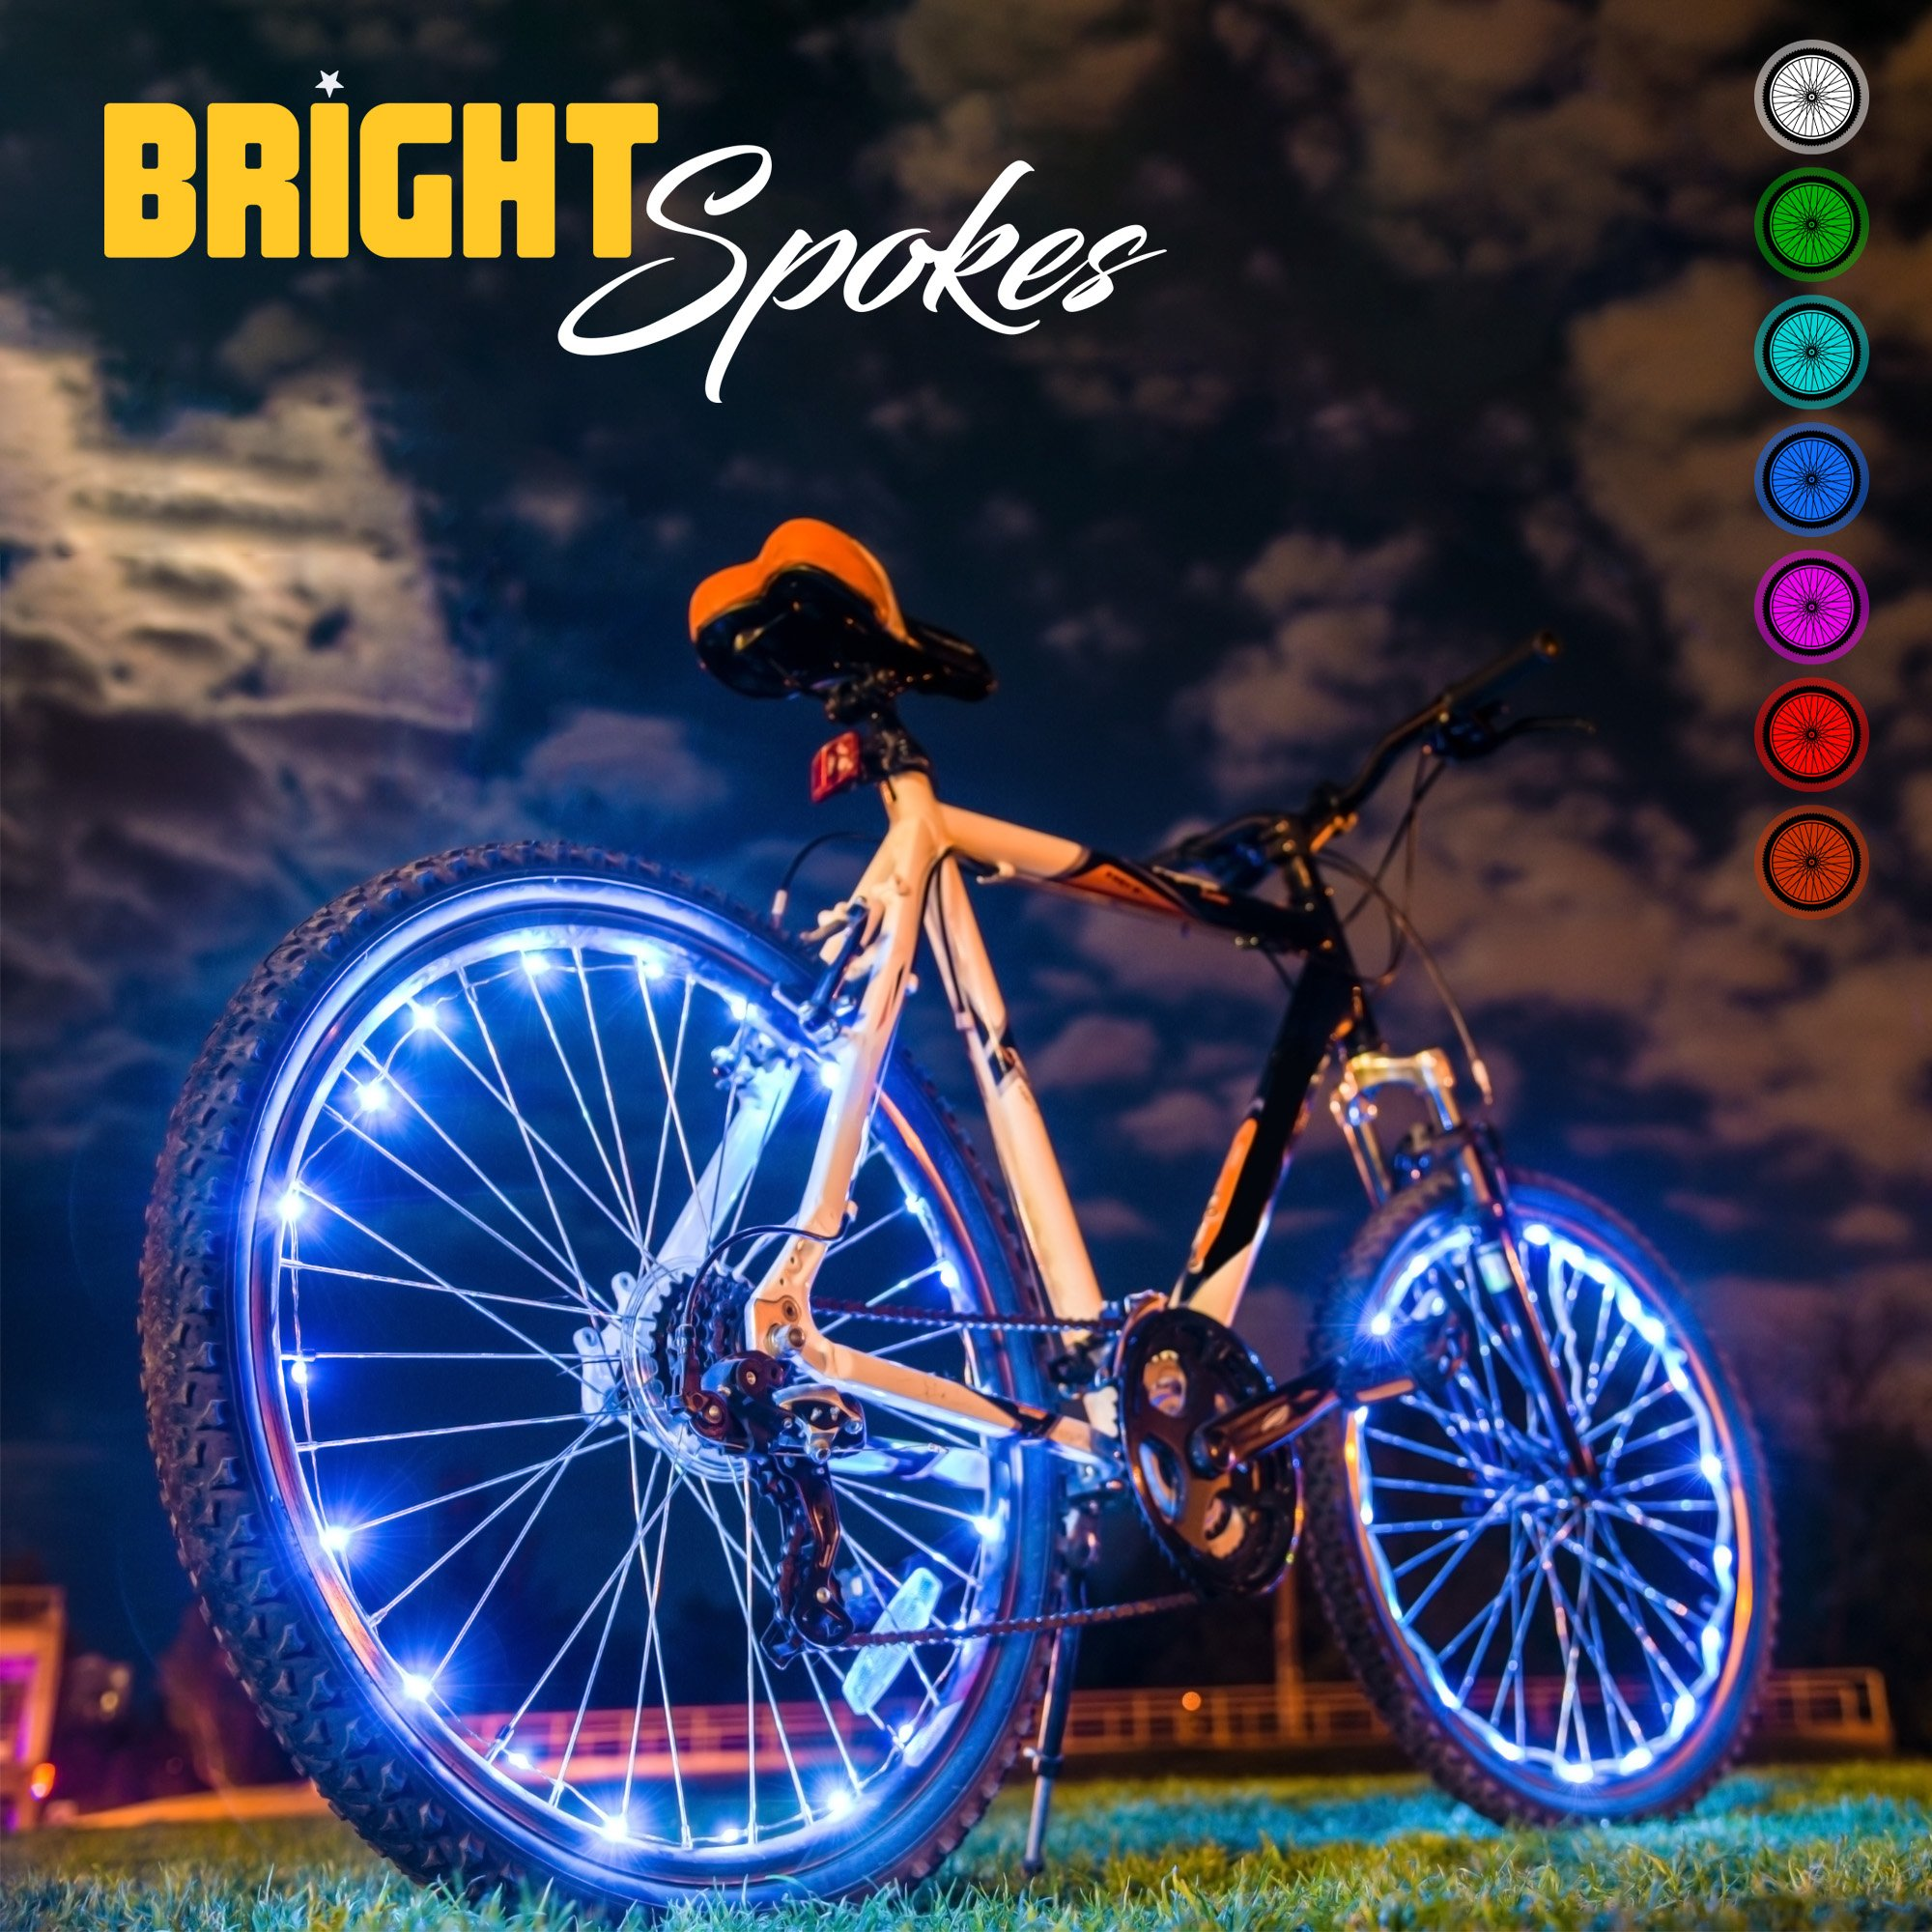 Bright Spokes Premium LED Bike Wheel Lights | 7 Colors in 1 | USB Rechargeable Battery | Strong Silicone Tube Cover | 18 Modes | Best Gift for all ages | 5, 6, 7, 8, 9 + year old boy gifts (1 Tire) by Gear Nation (Image #1)